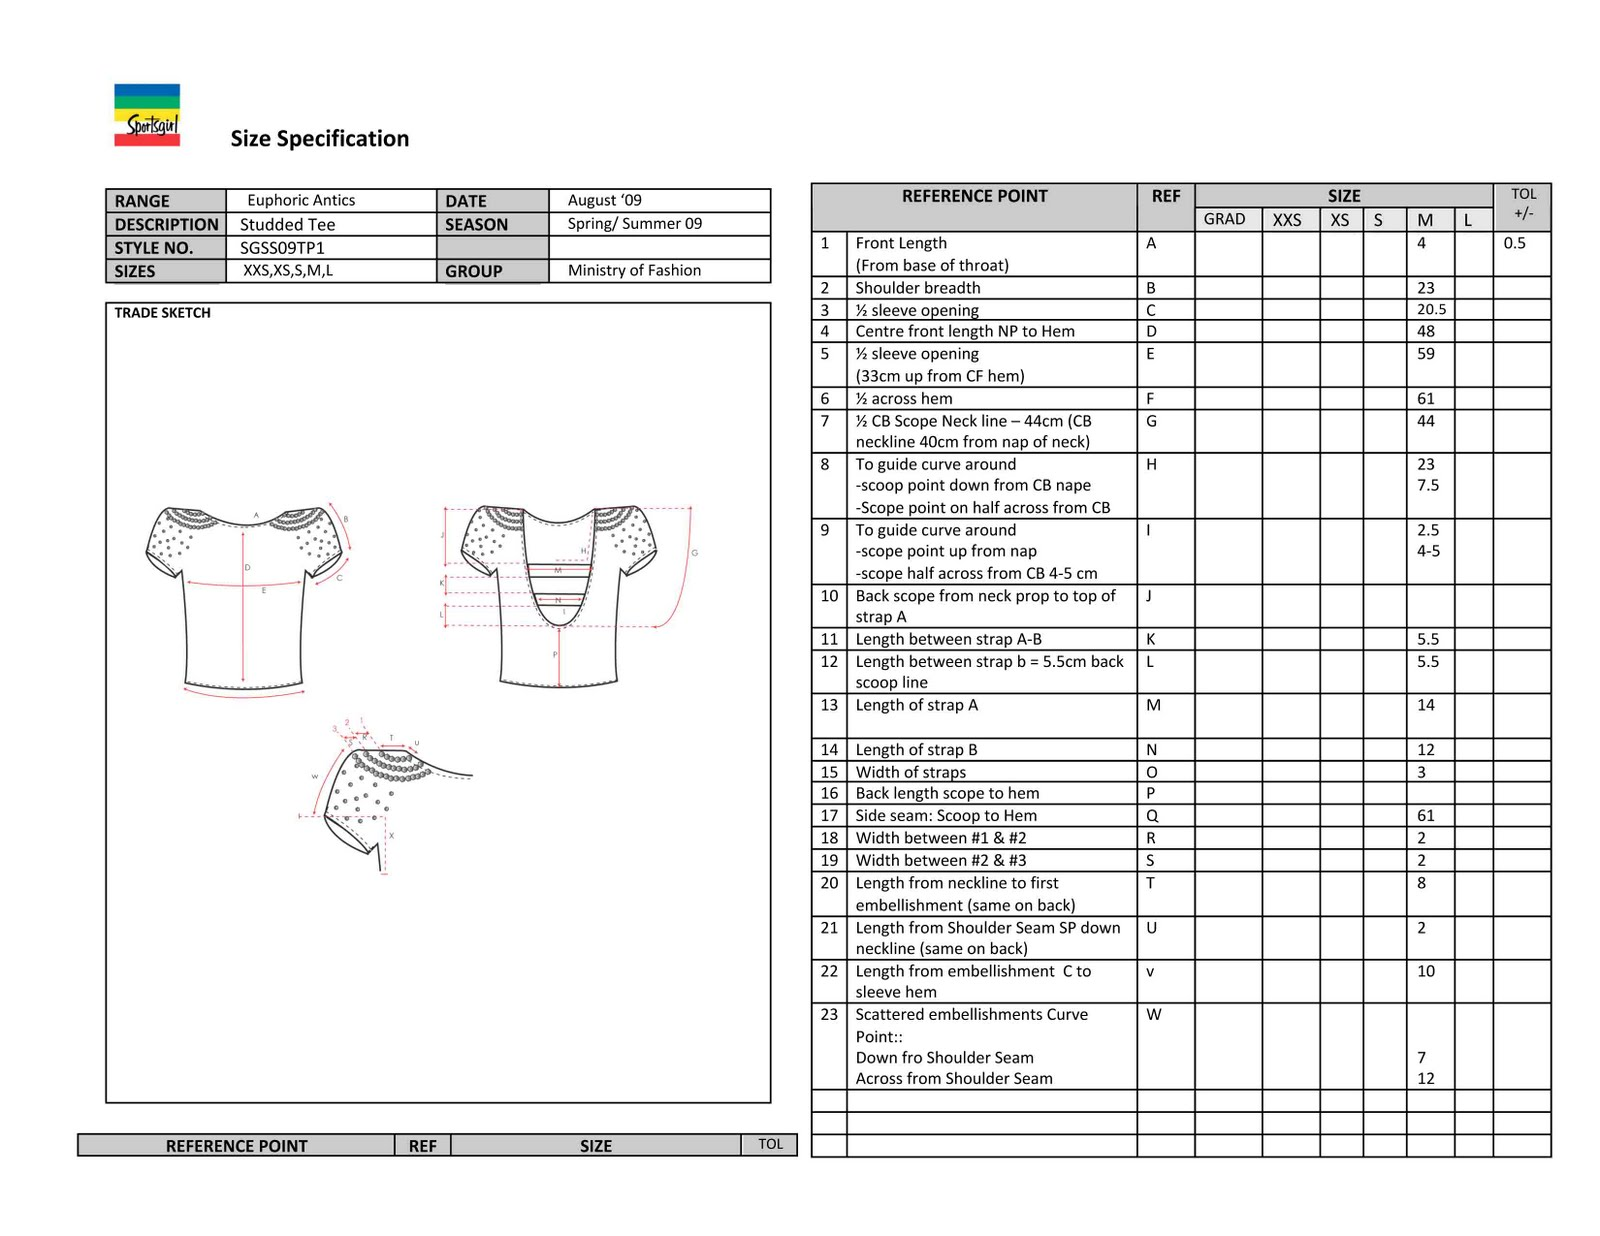 Specification Sheet Fashion